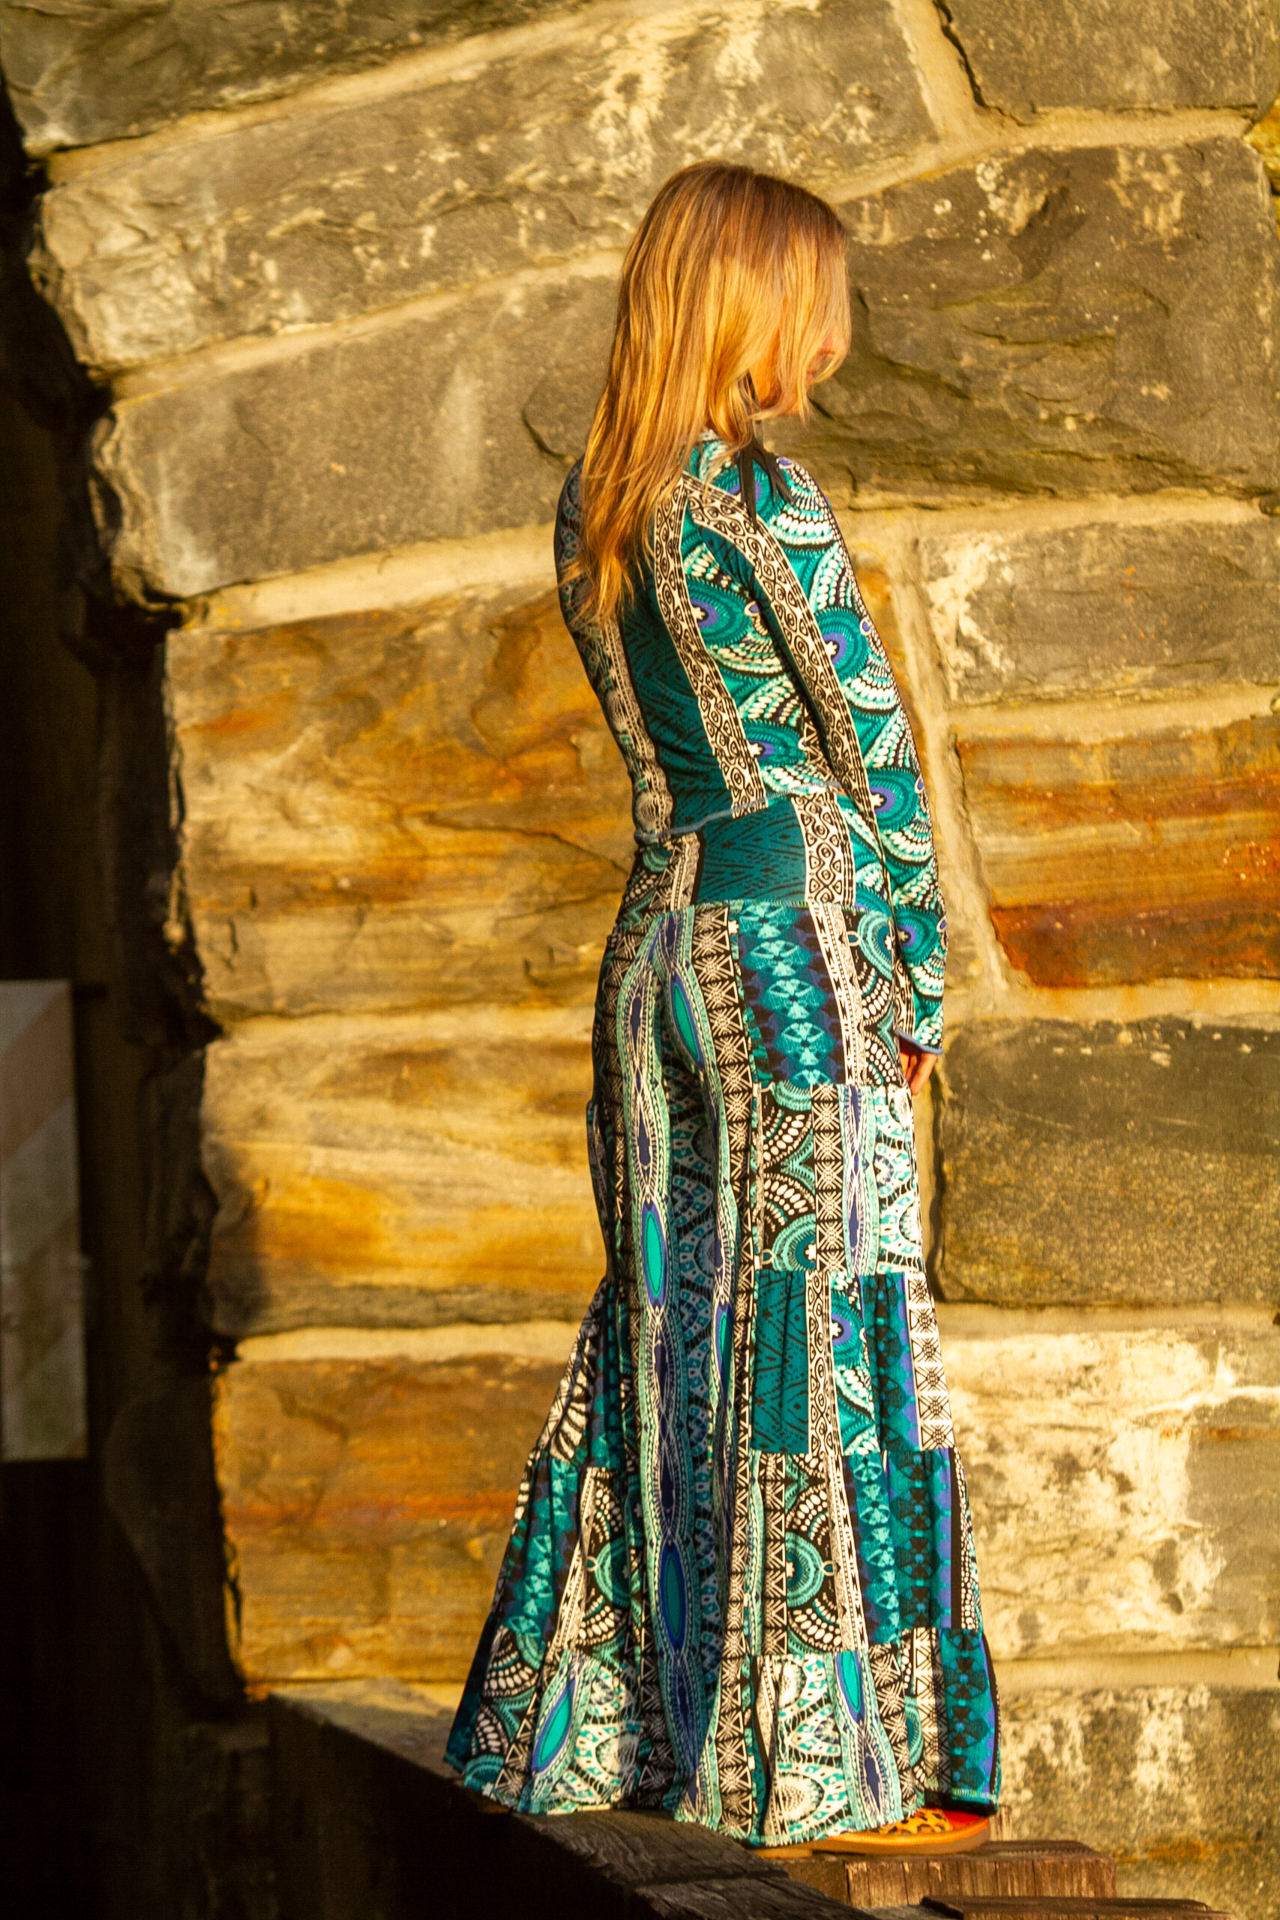 Fashion Design Autumn Teneyl wearing a boho style look by Autumn Teneyl Designs featuring a Wide legged pant with a long sleeved  top For women.